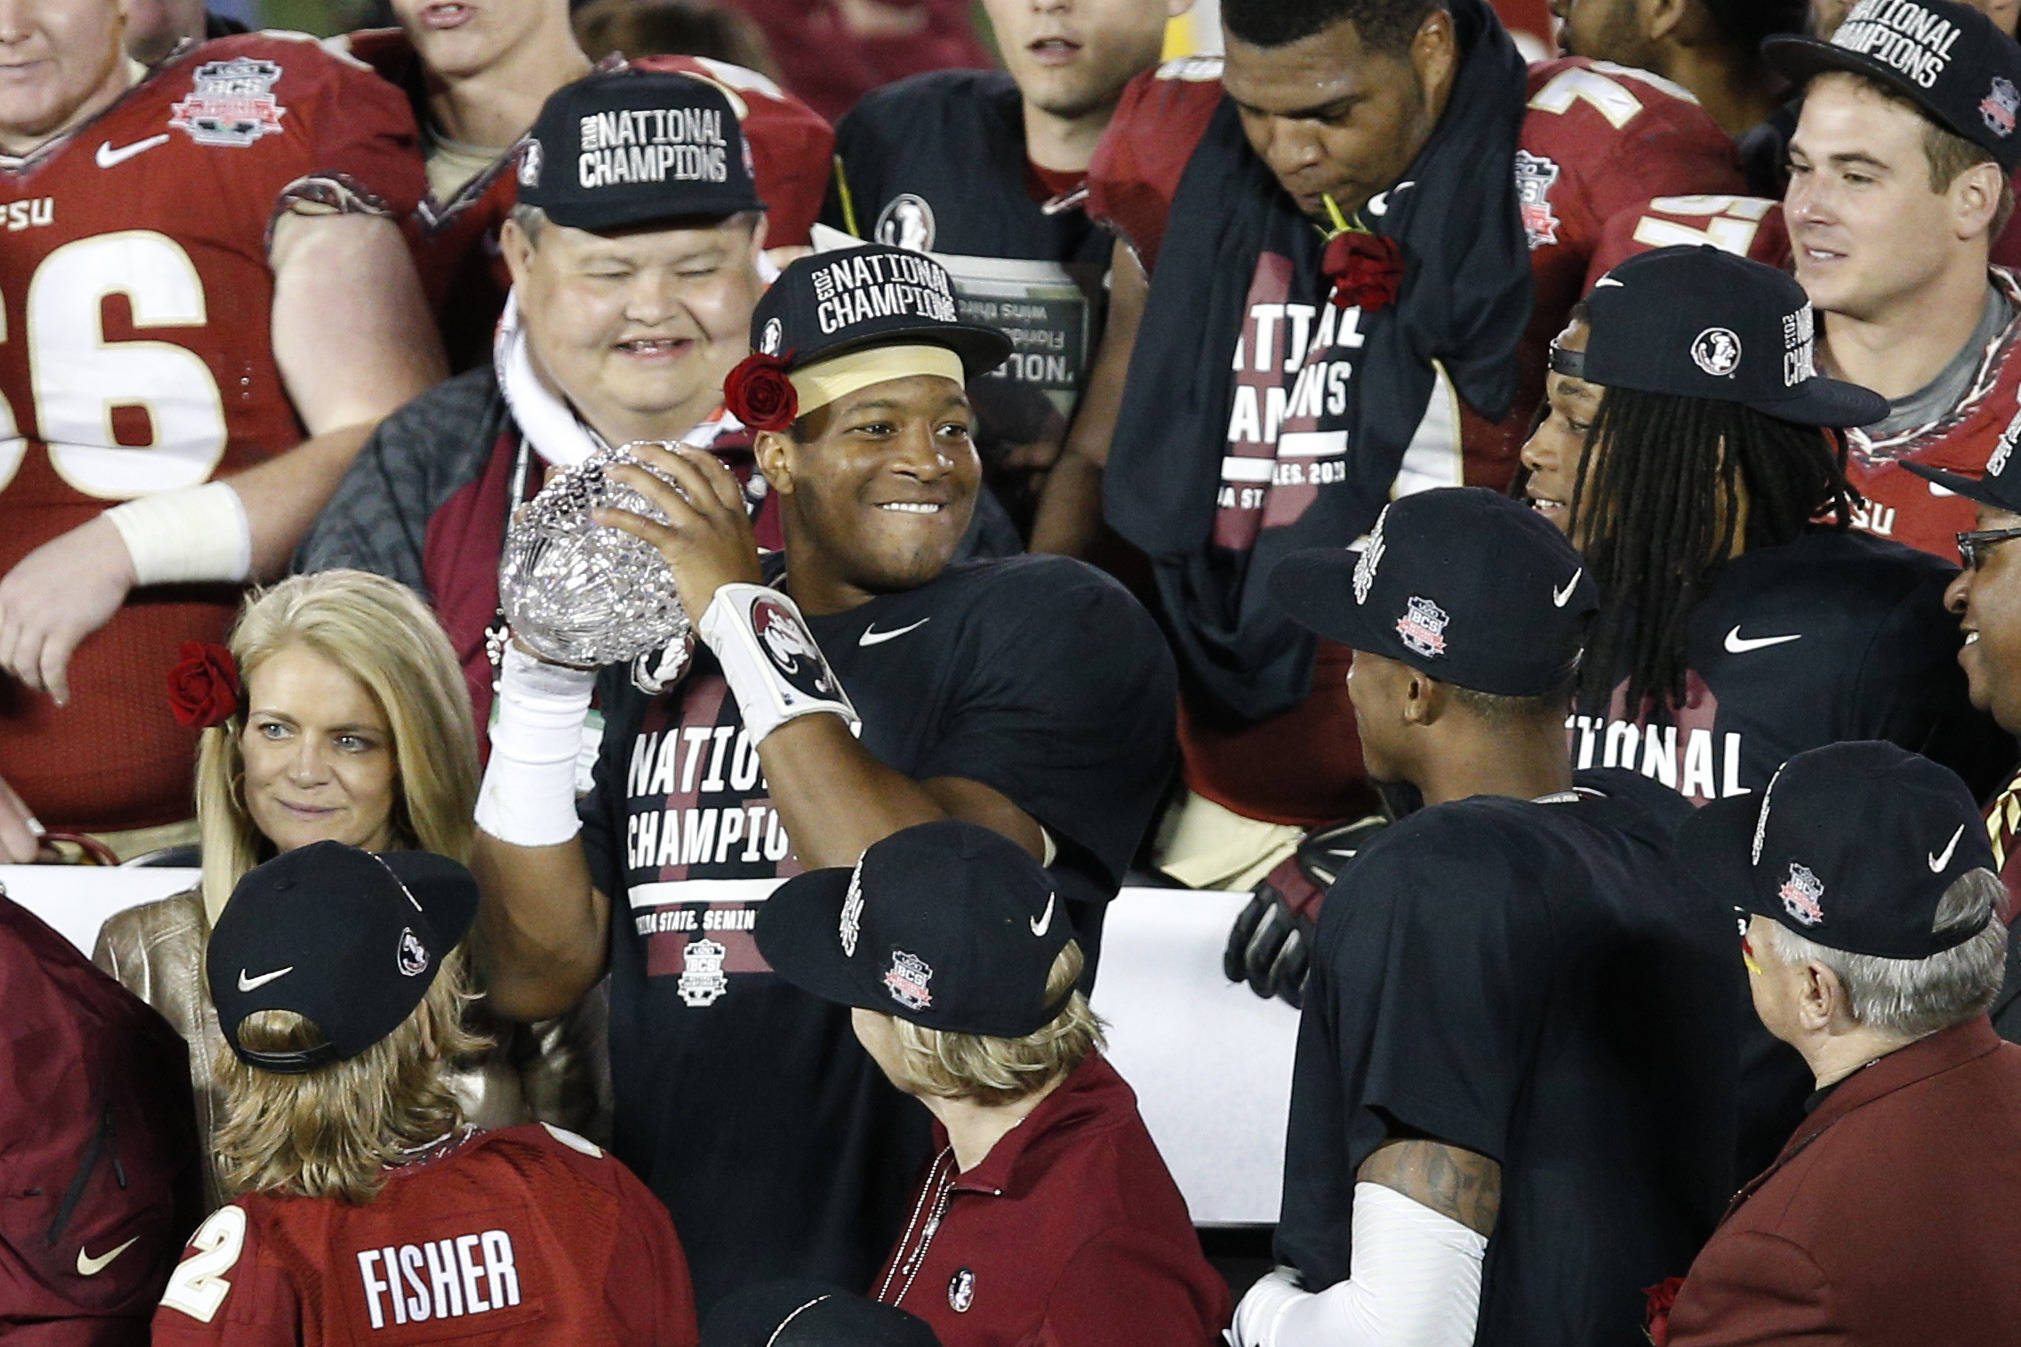 Jan 6, 2014; Pasadena, CA, USA; Florida State Seminoles quarterback Jameis Winston (5) holds the Coaches Trophy after defeating the Auburn Tigers 34-31 in the 2014 BCS National Championship game at the Rose Bowl.  Mandatory Credit: Kelvin Kuo-USA TODAY Sports